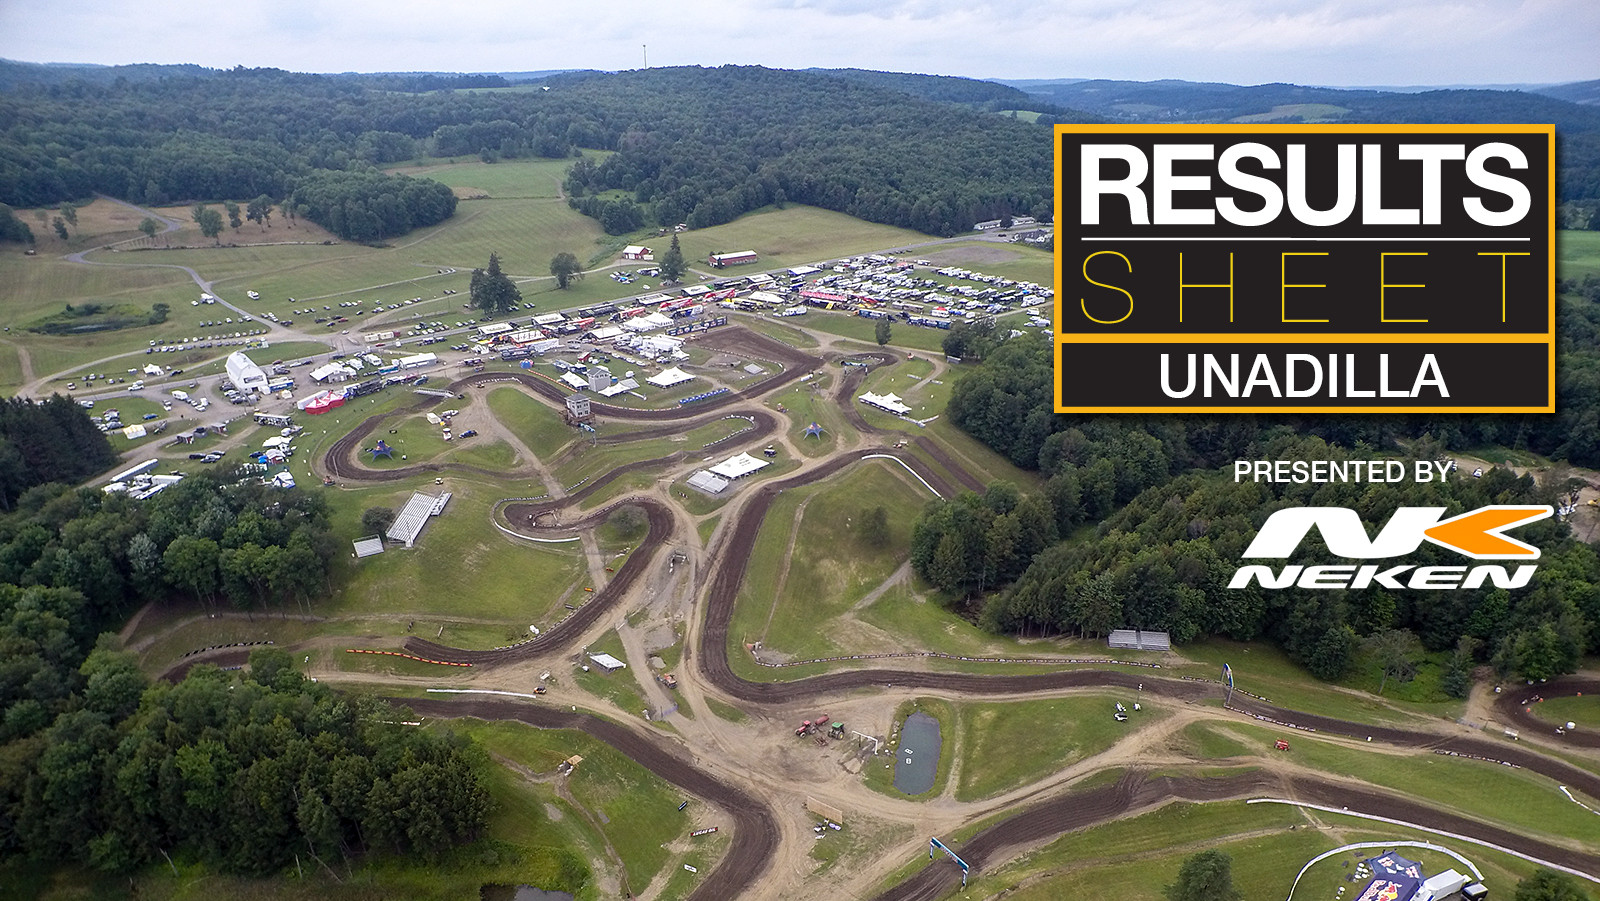 Results Sheet: Unadilla